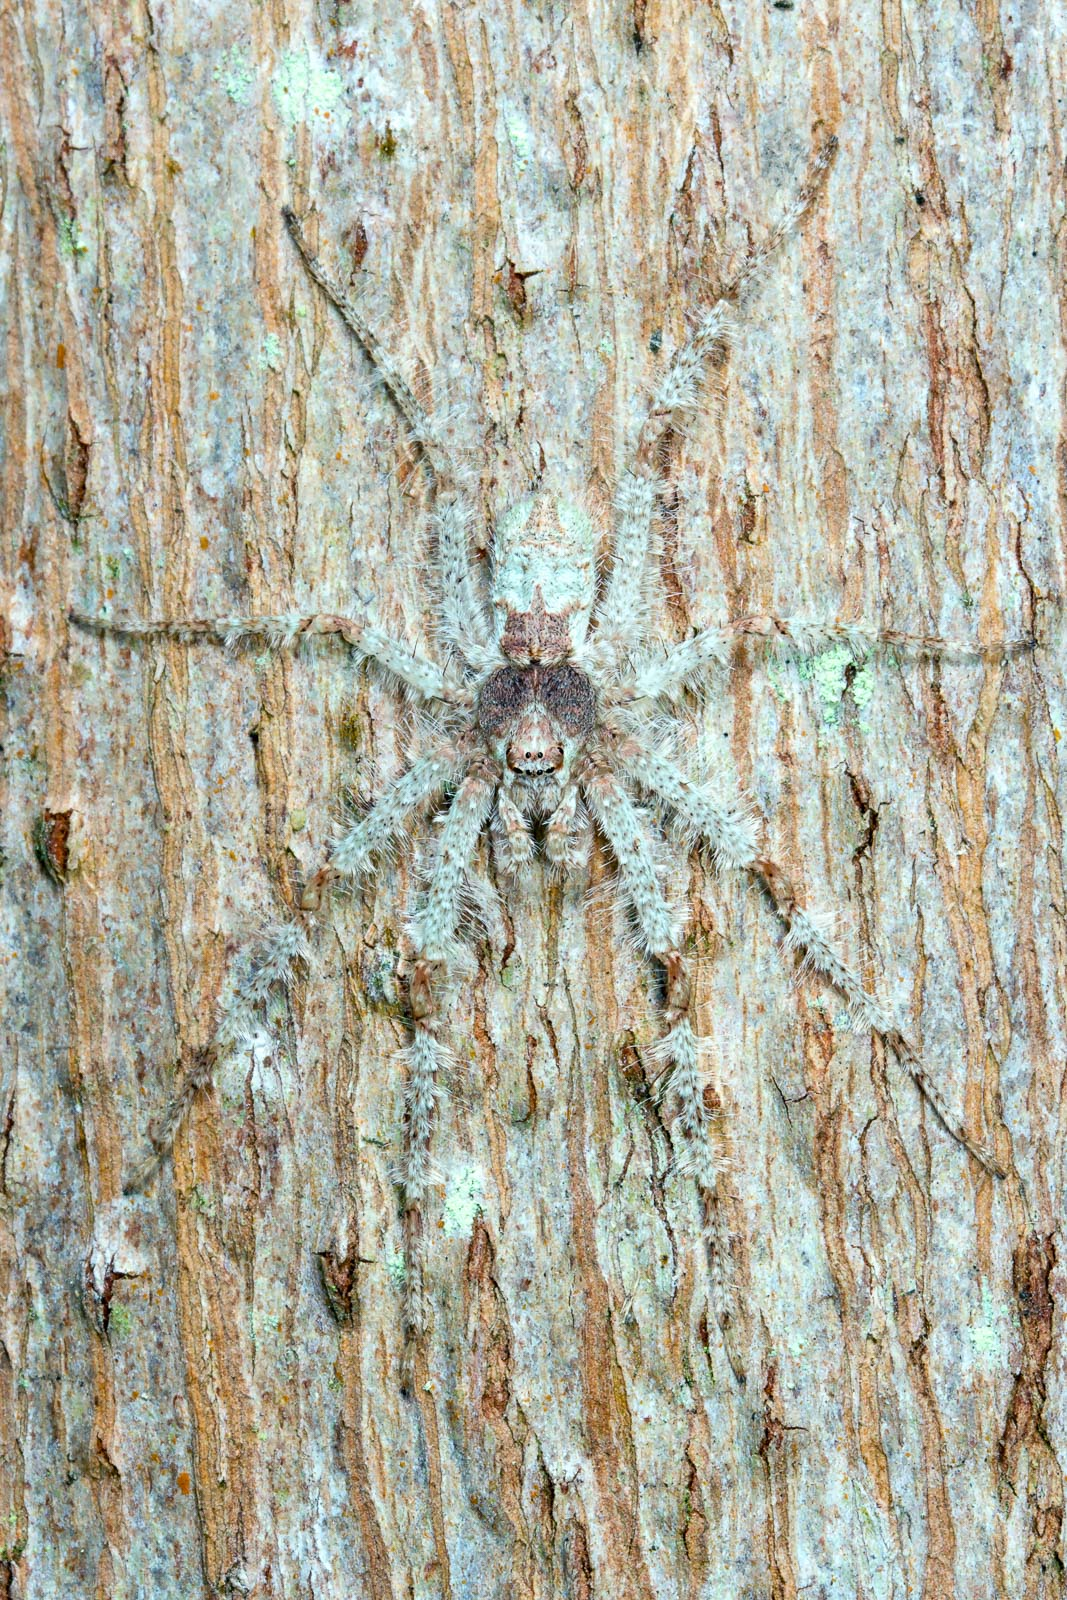 Tree Dwelling Spider Camouflaged on Tree